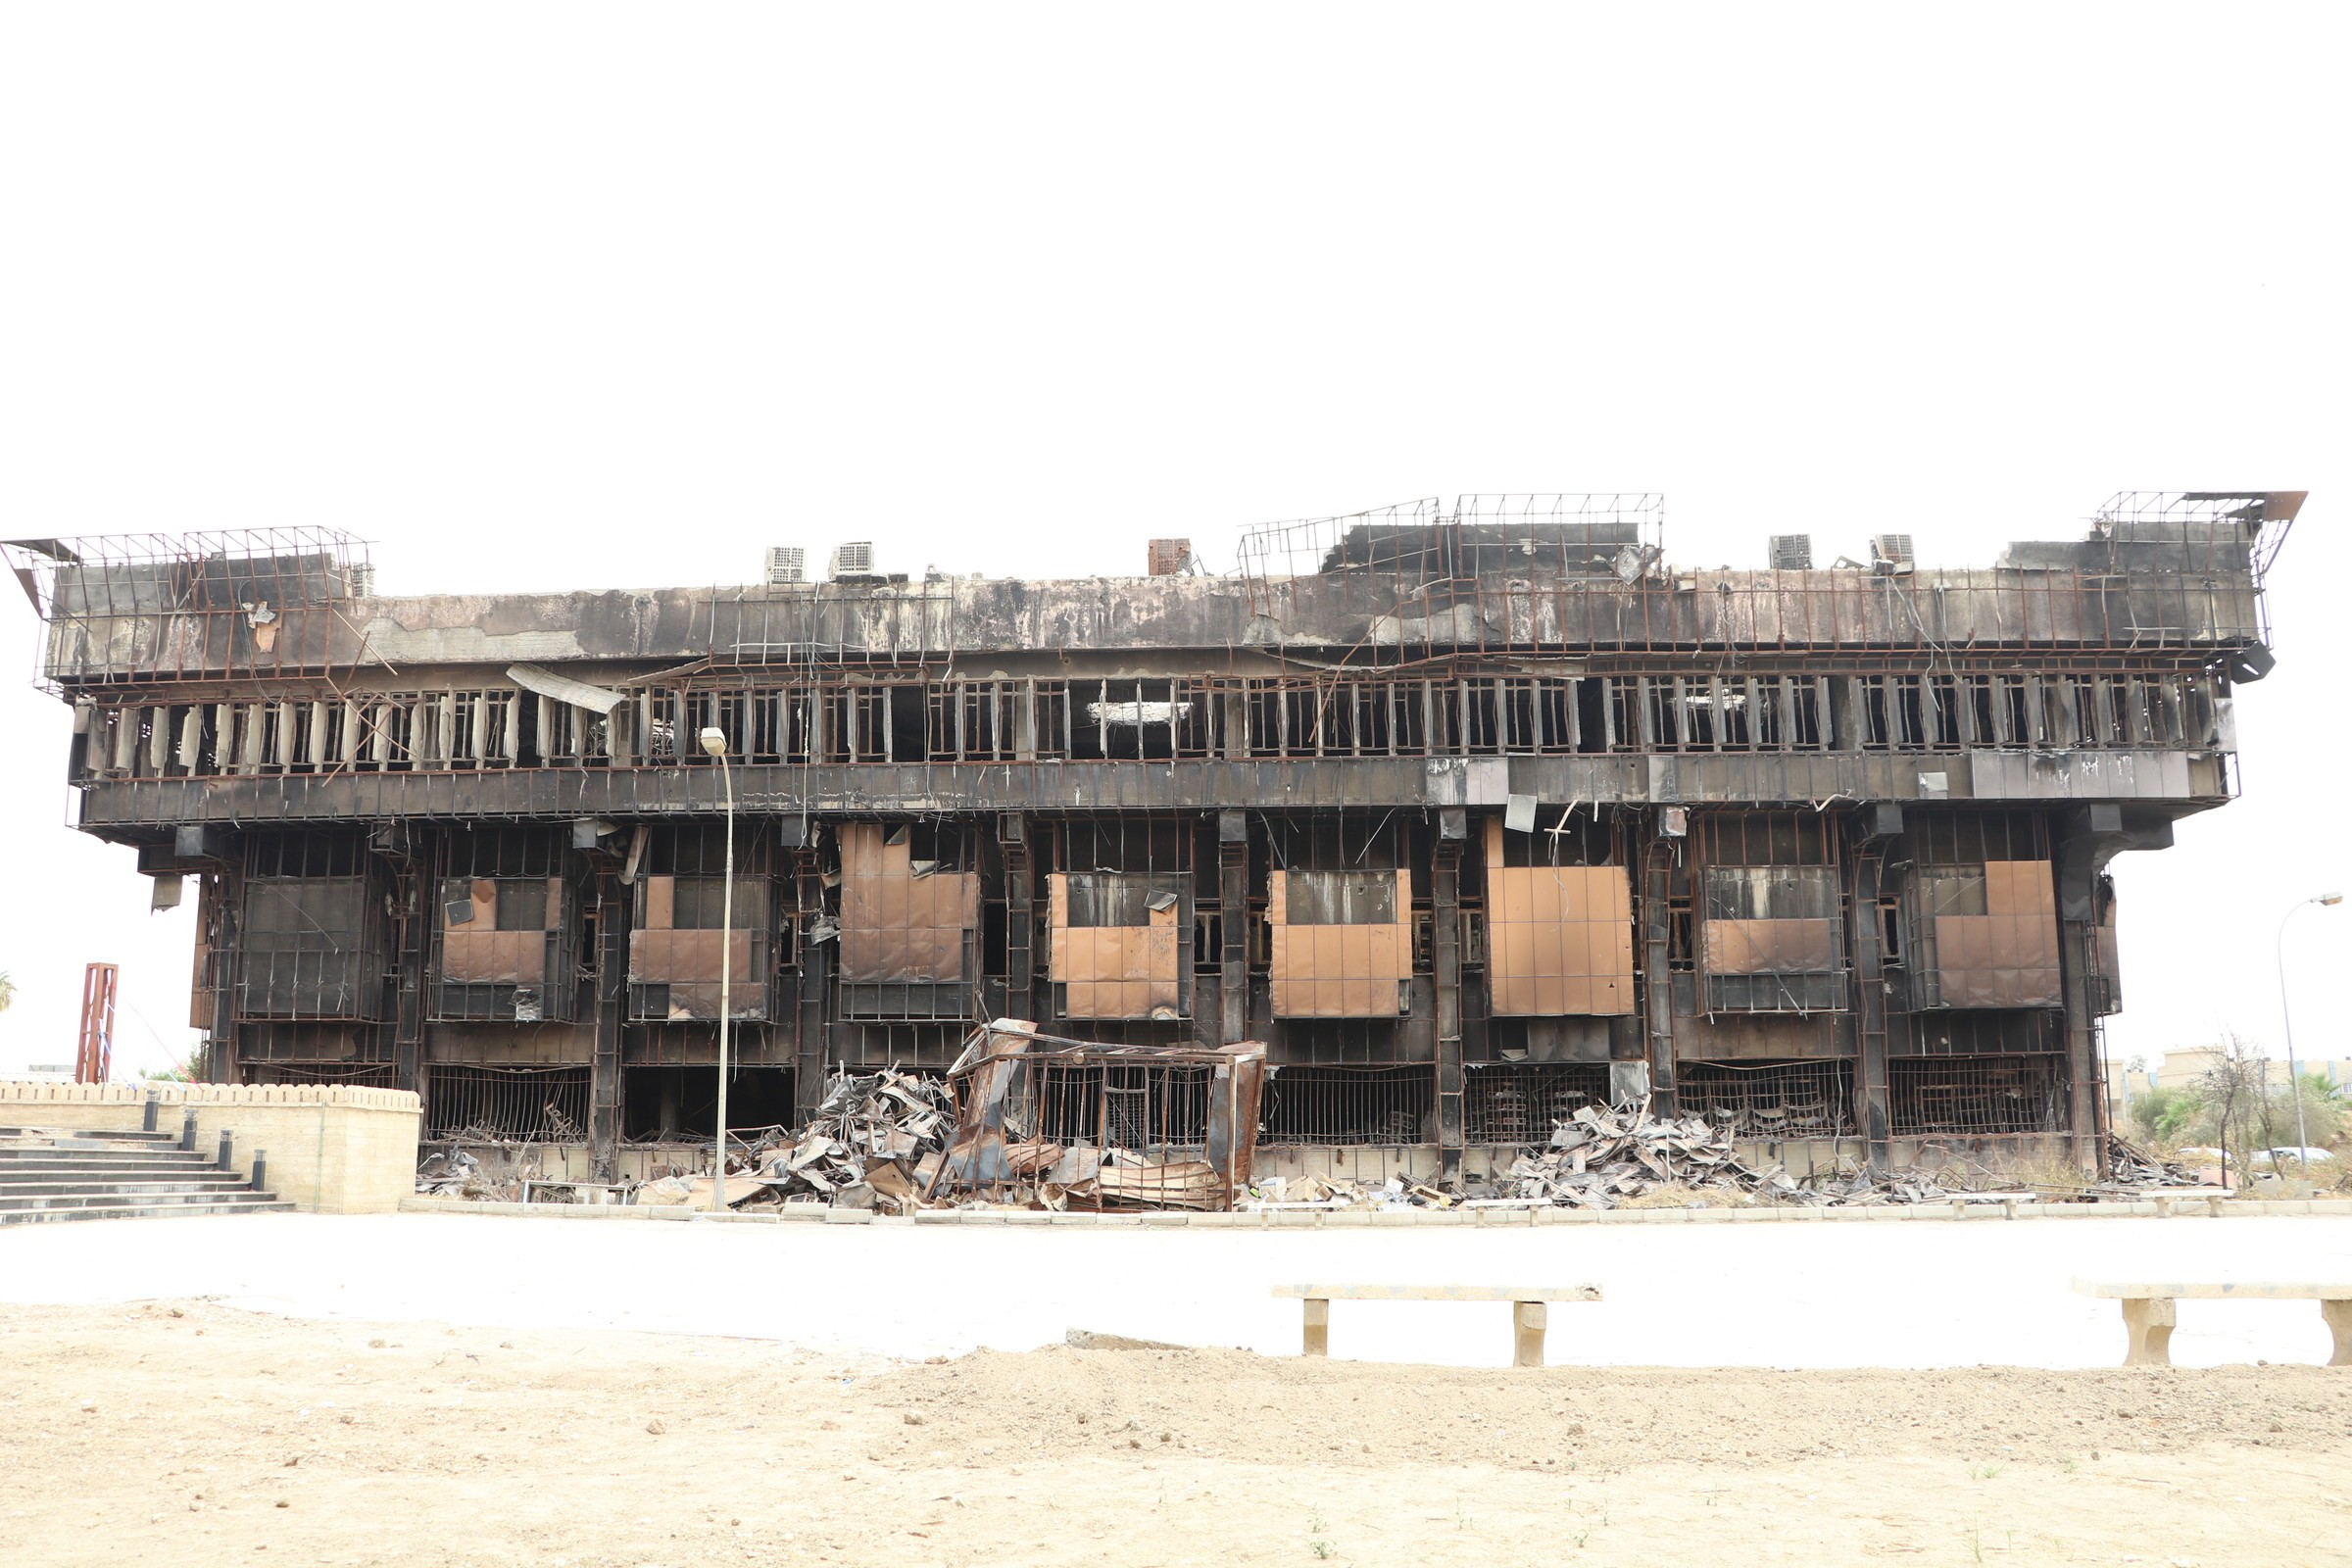 Islamic state destroyed the main library in the city of Mosul 02/23/2015 66